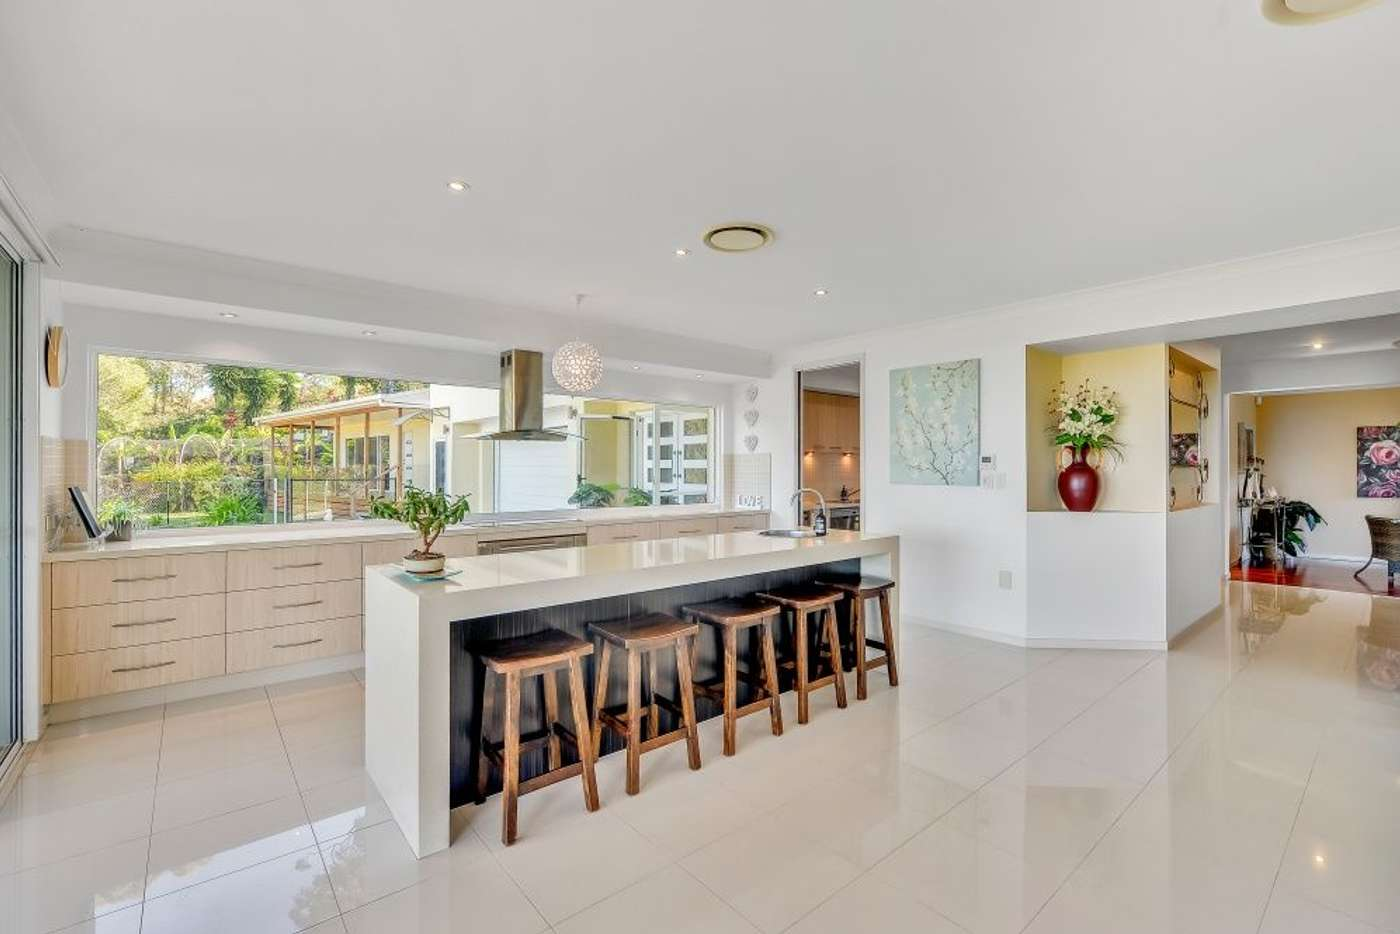 Fifth view of Homely house listing, 9 Denton Court, Daisy Hill QLD 4127